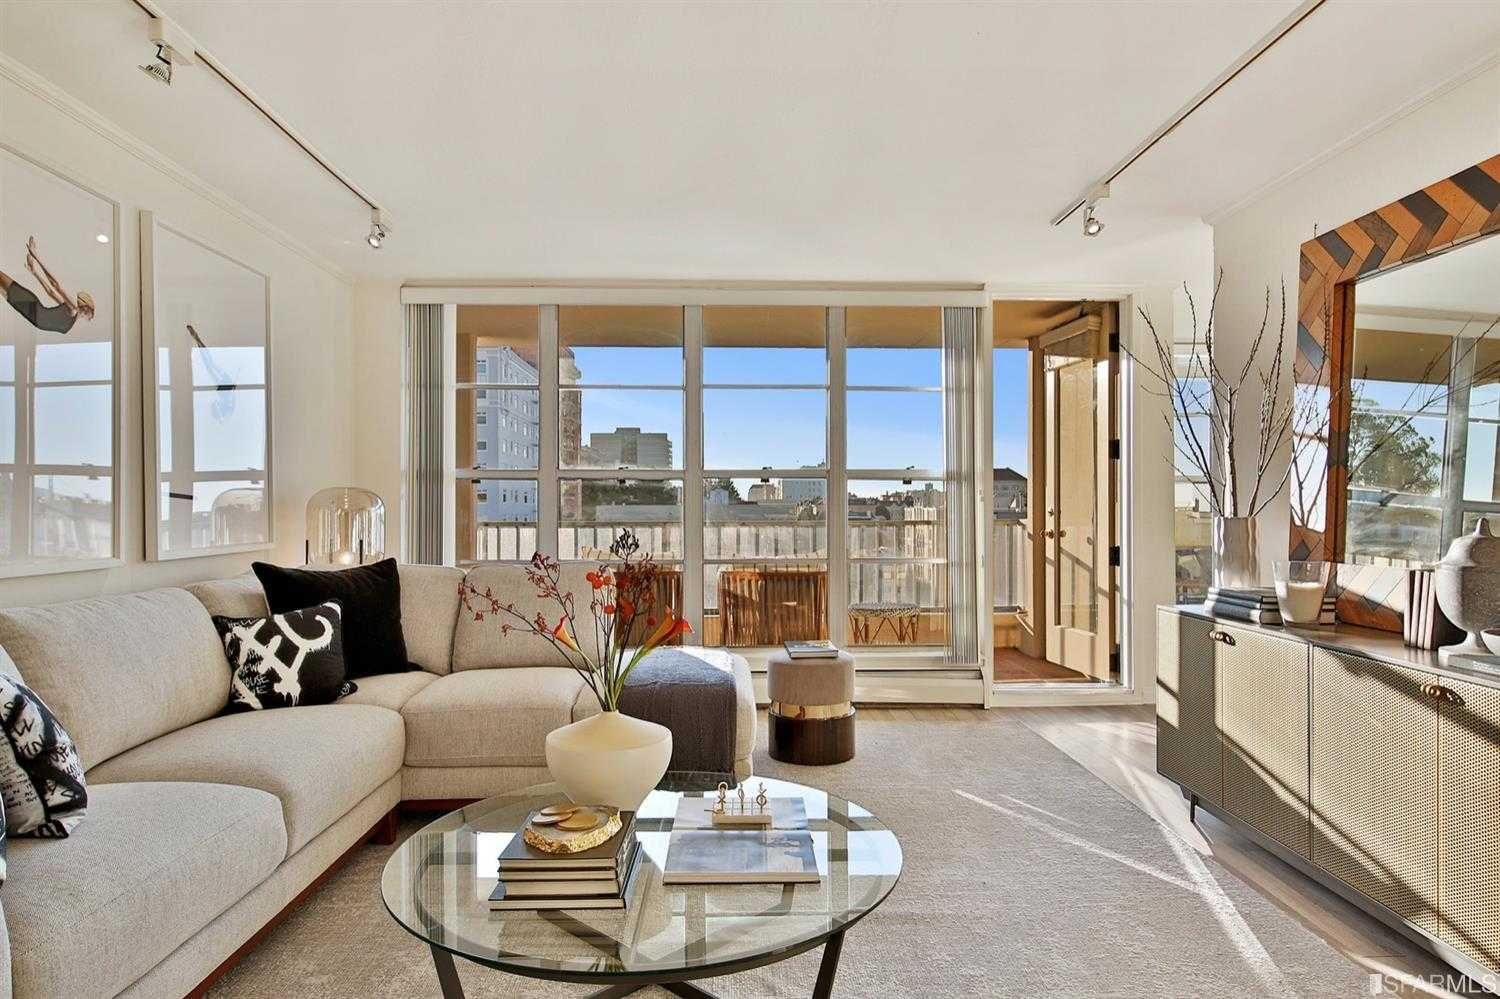 $1,425,000 - 2Br/2Ba -  for Sale in San Francisco